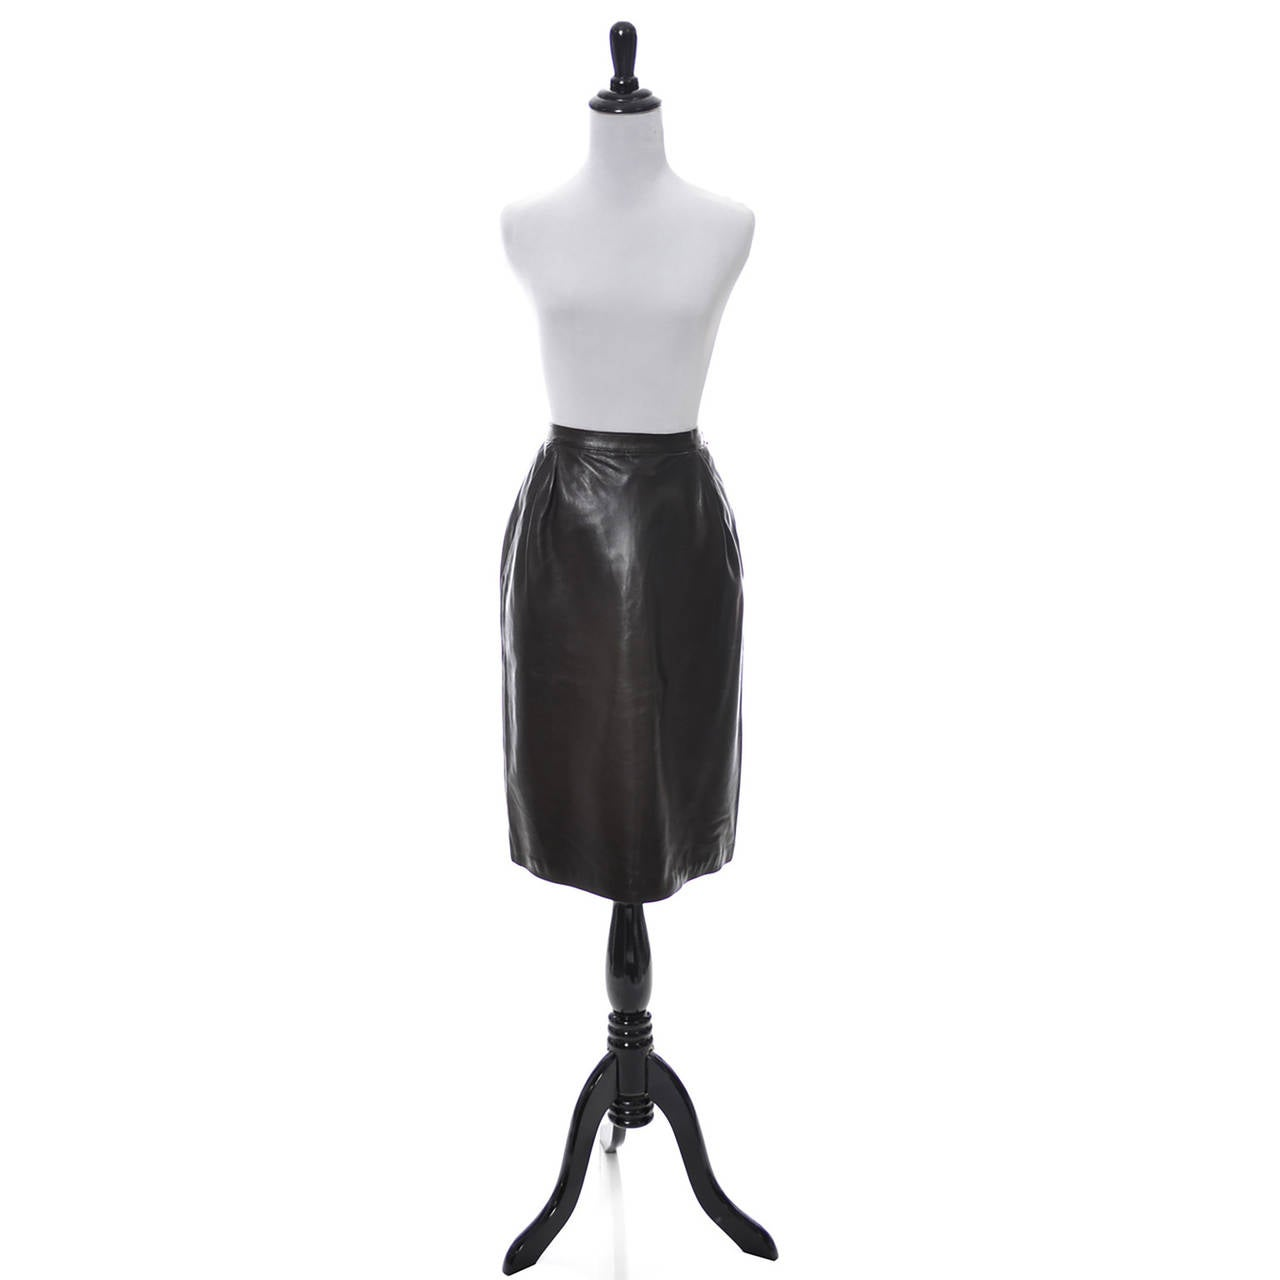 Yves Saint Laurent Rive Gauche vintage leather skirt from the 1970s.  This gorgeous vintage dark chocolate brown 1970s YSL leather skirt comes from one of my all time favorite estates of vintage clothing. The woman who owned this barely, if ever